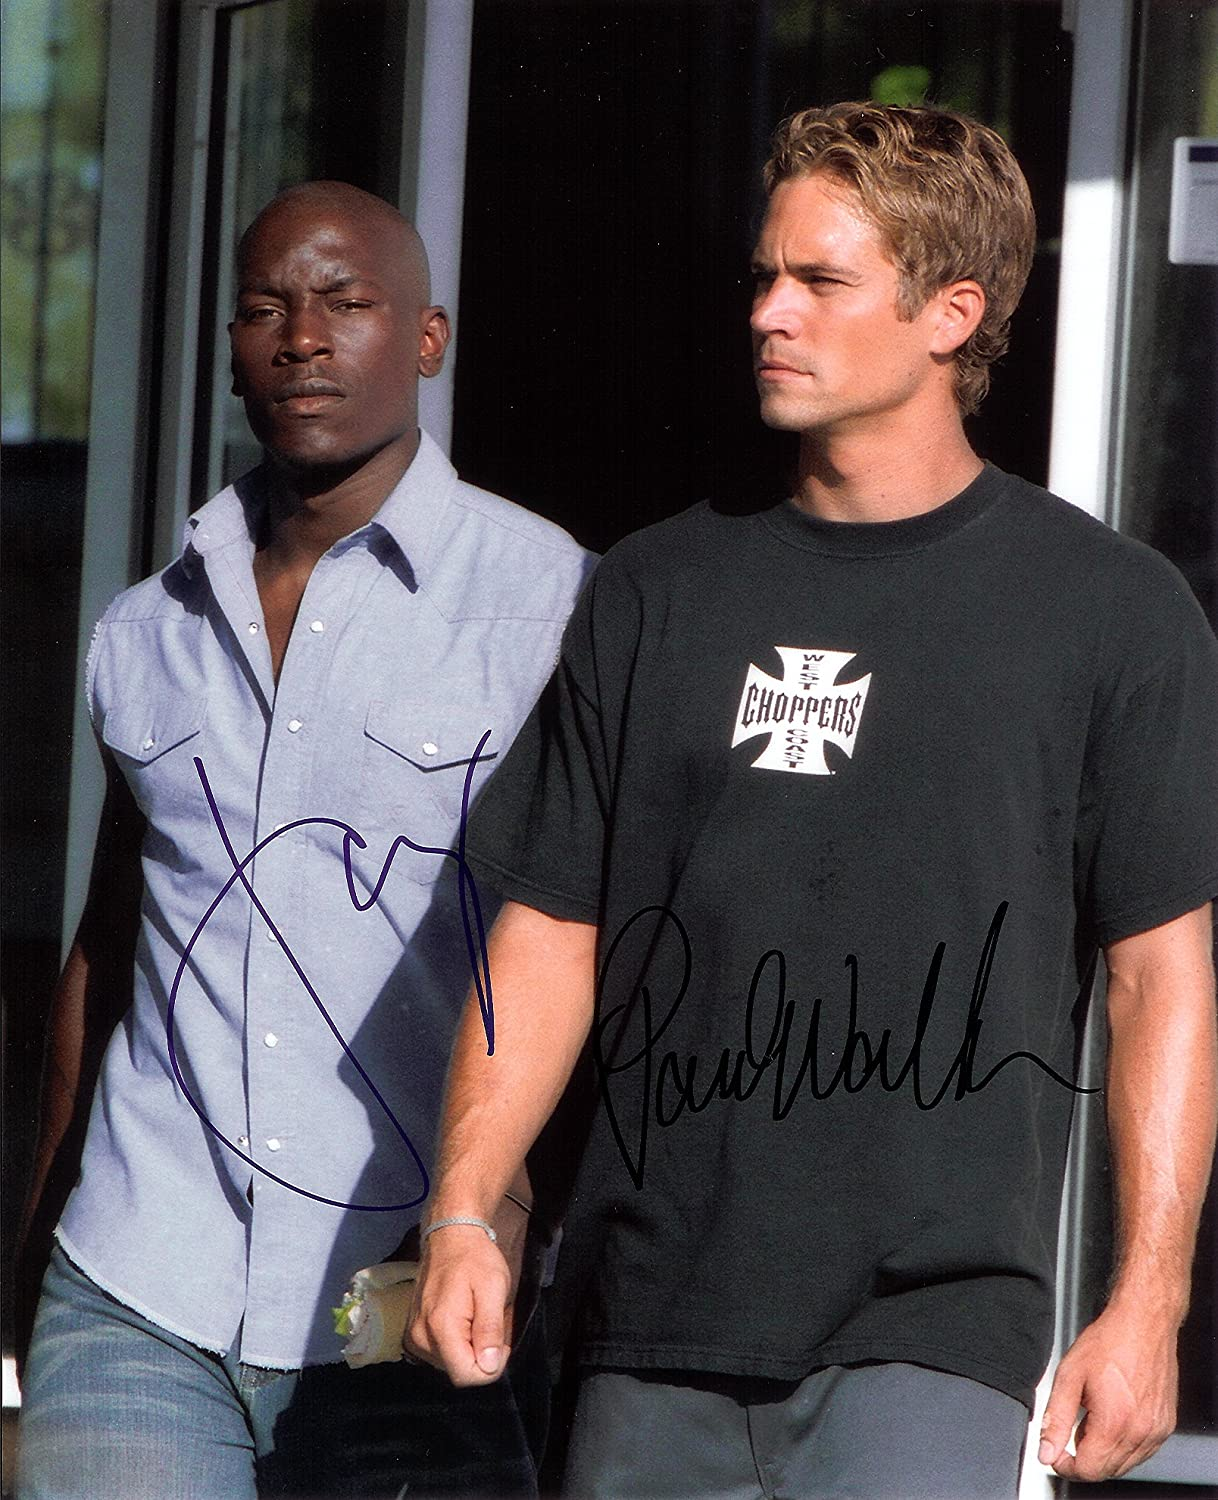 Fast & Furious with Paul Walker Signed Autographed 8 X 10 RP Photo - Mint Condition got7 got 7 youngjae jackson autographed signed photo flight log arrival 6 inches new korean freeshipping 03 2017